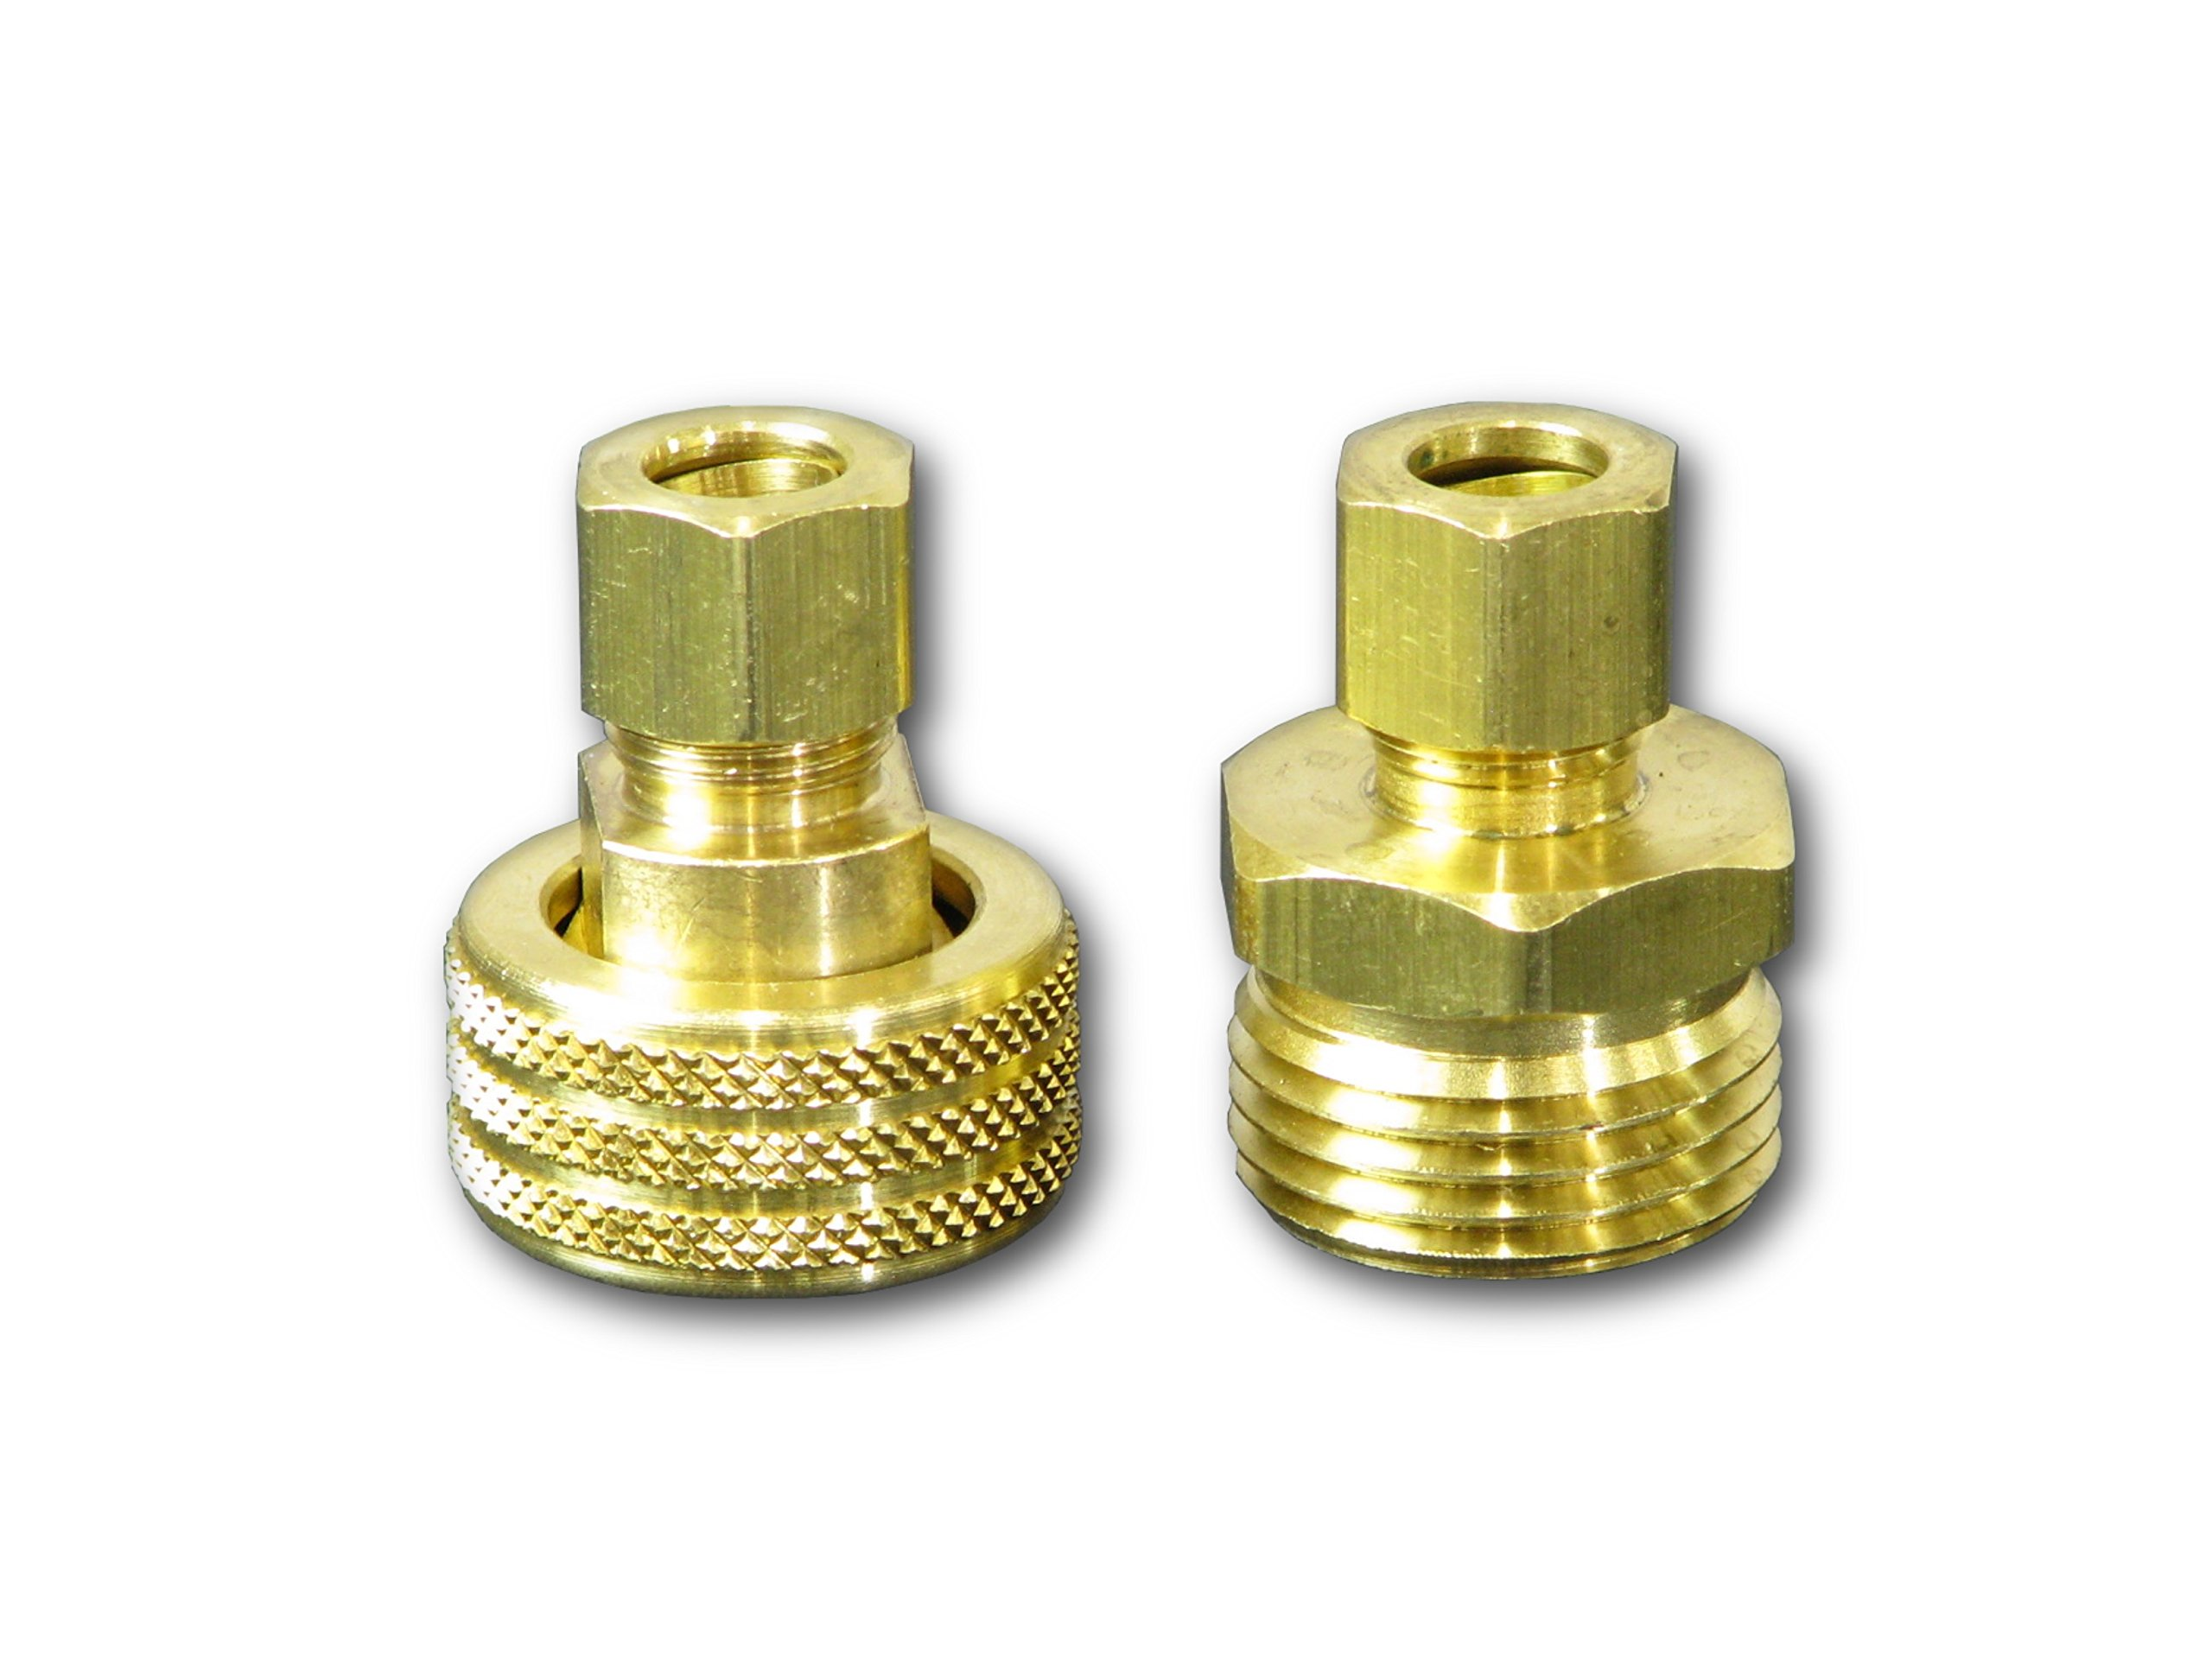 Coldbreak Brewing Equipment CBCOV38 Brass 3/8'' Compression to Garden Hose Thread, Immersion Wort Chiller Conversion Kit, Male & Female Fittings